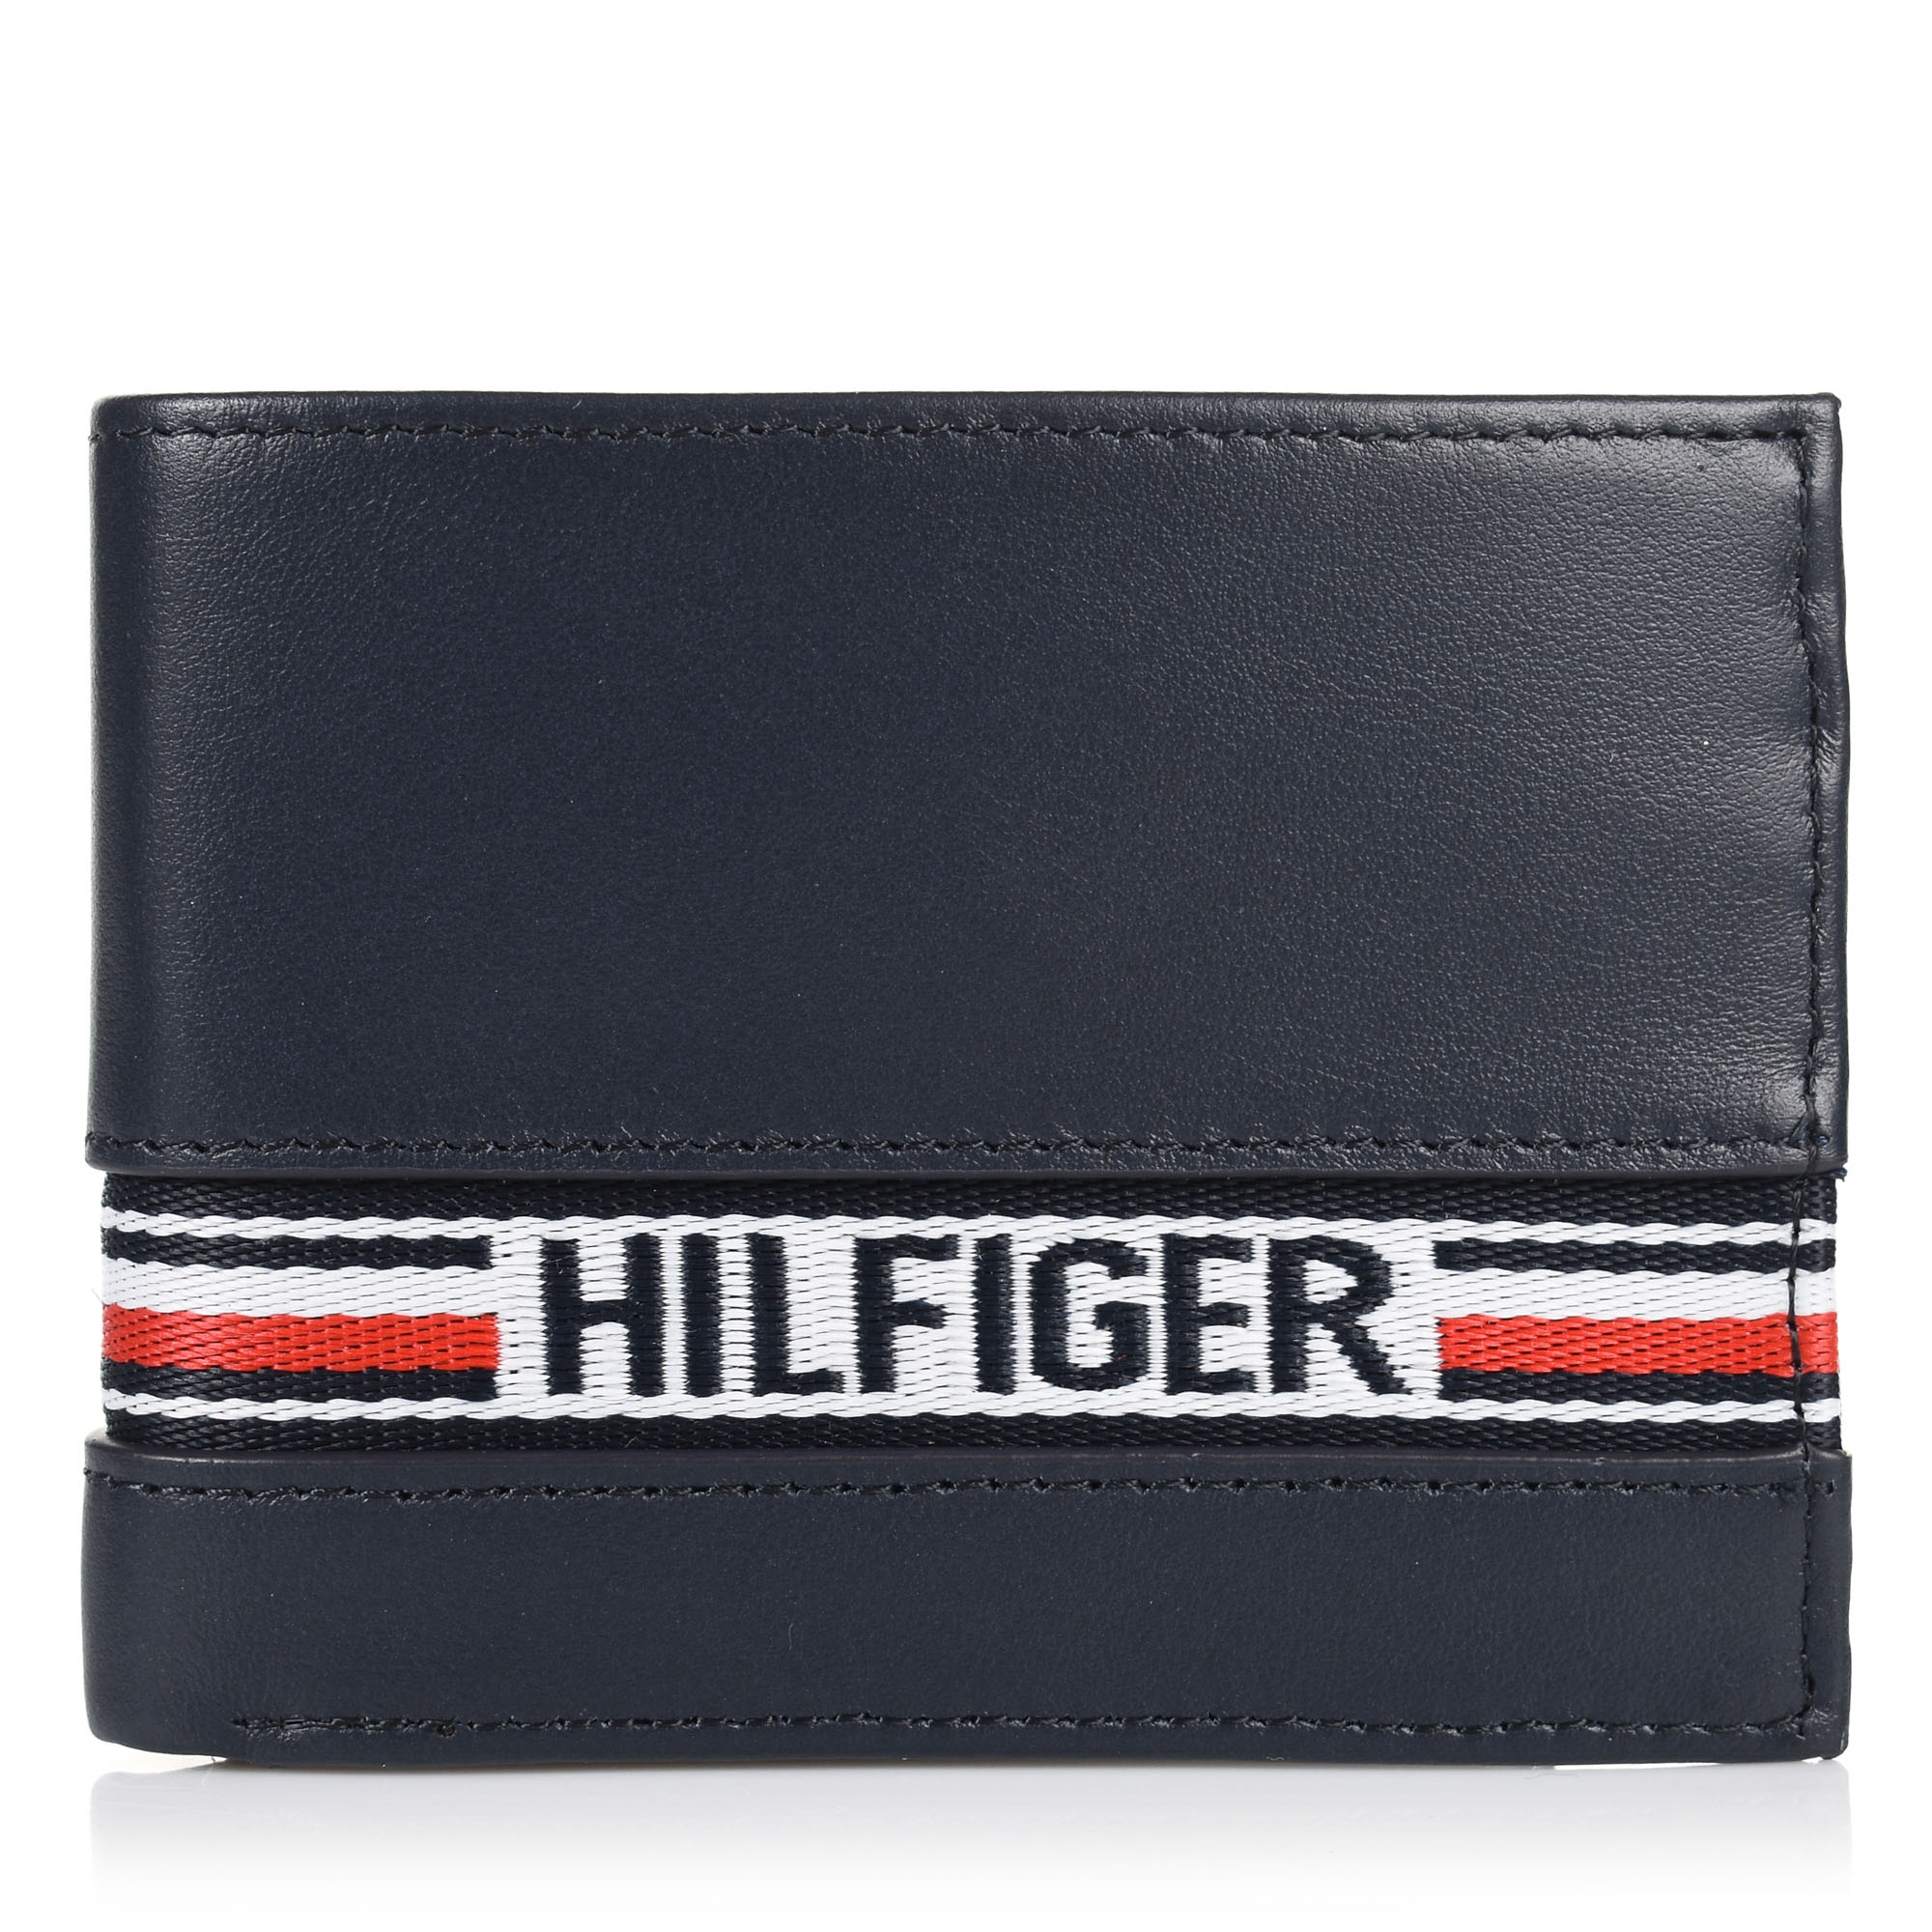 645c5d1f60f6 Πορτοφόλι Tommy Hilfiger Tape Mini CC Wallet AM0AM04561